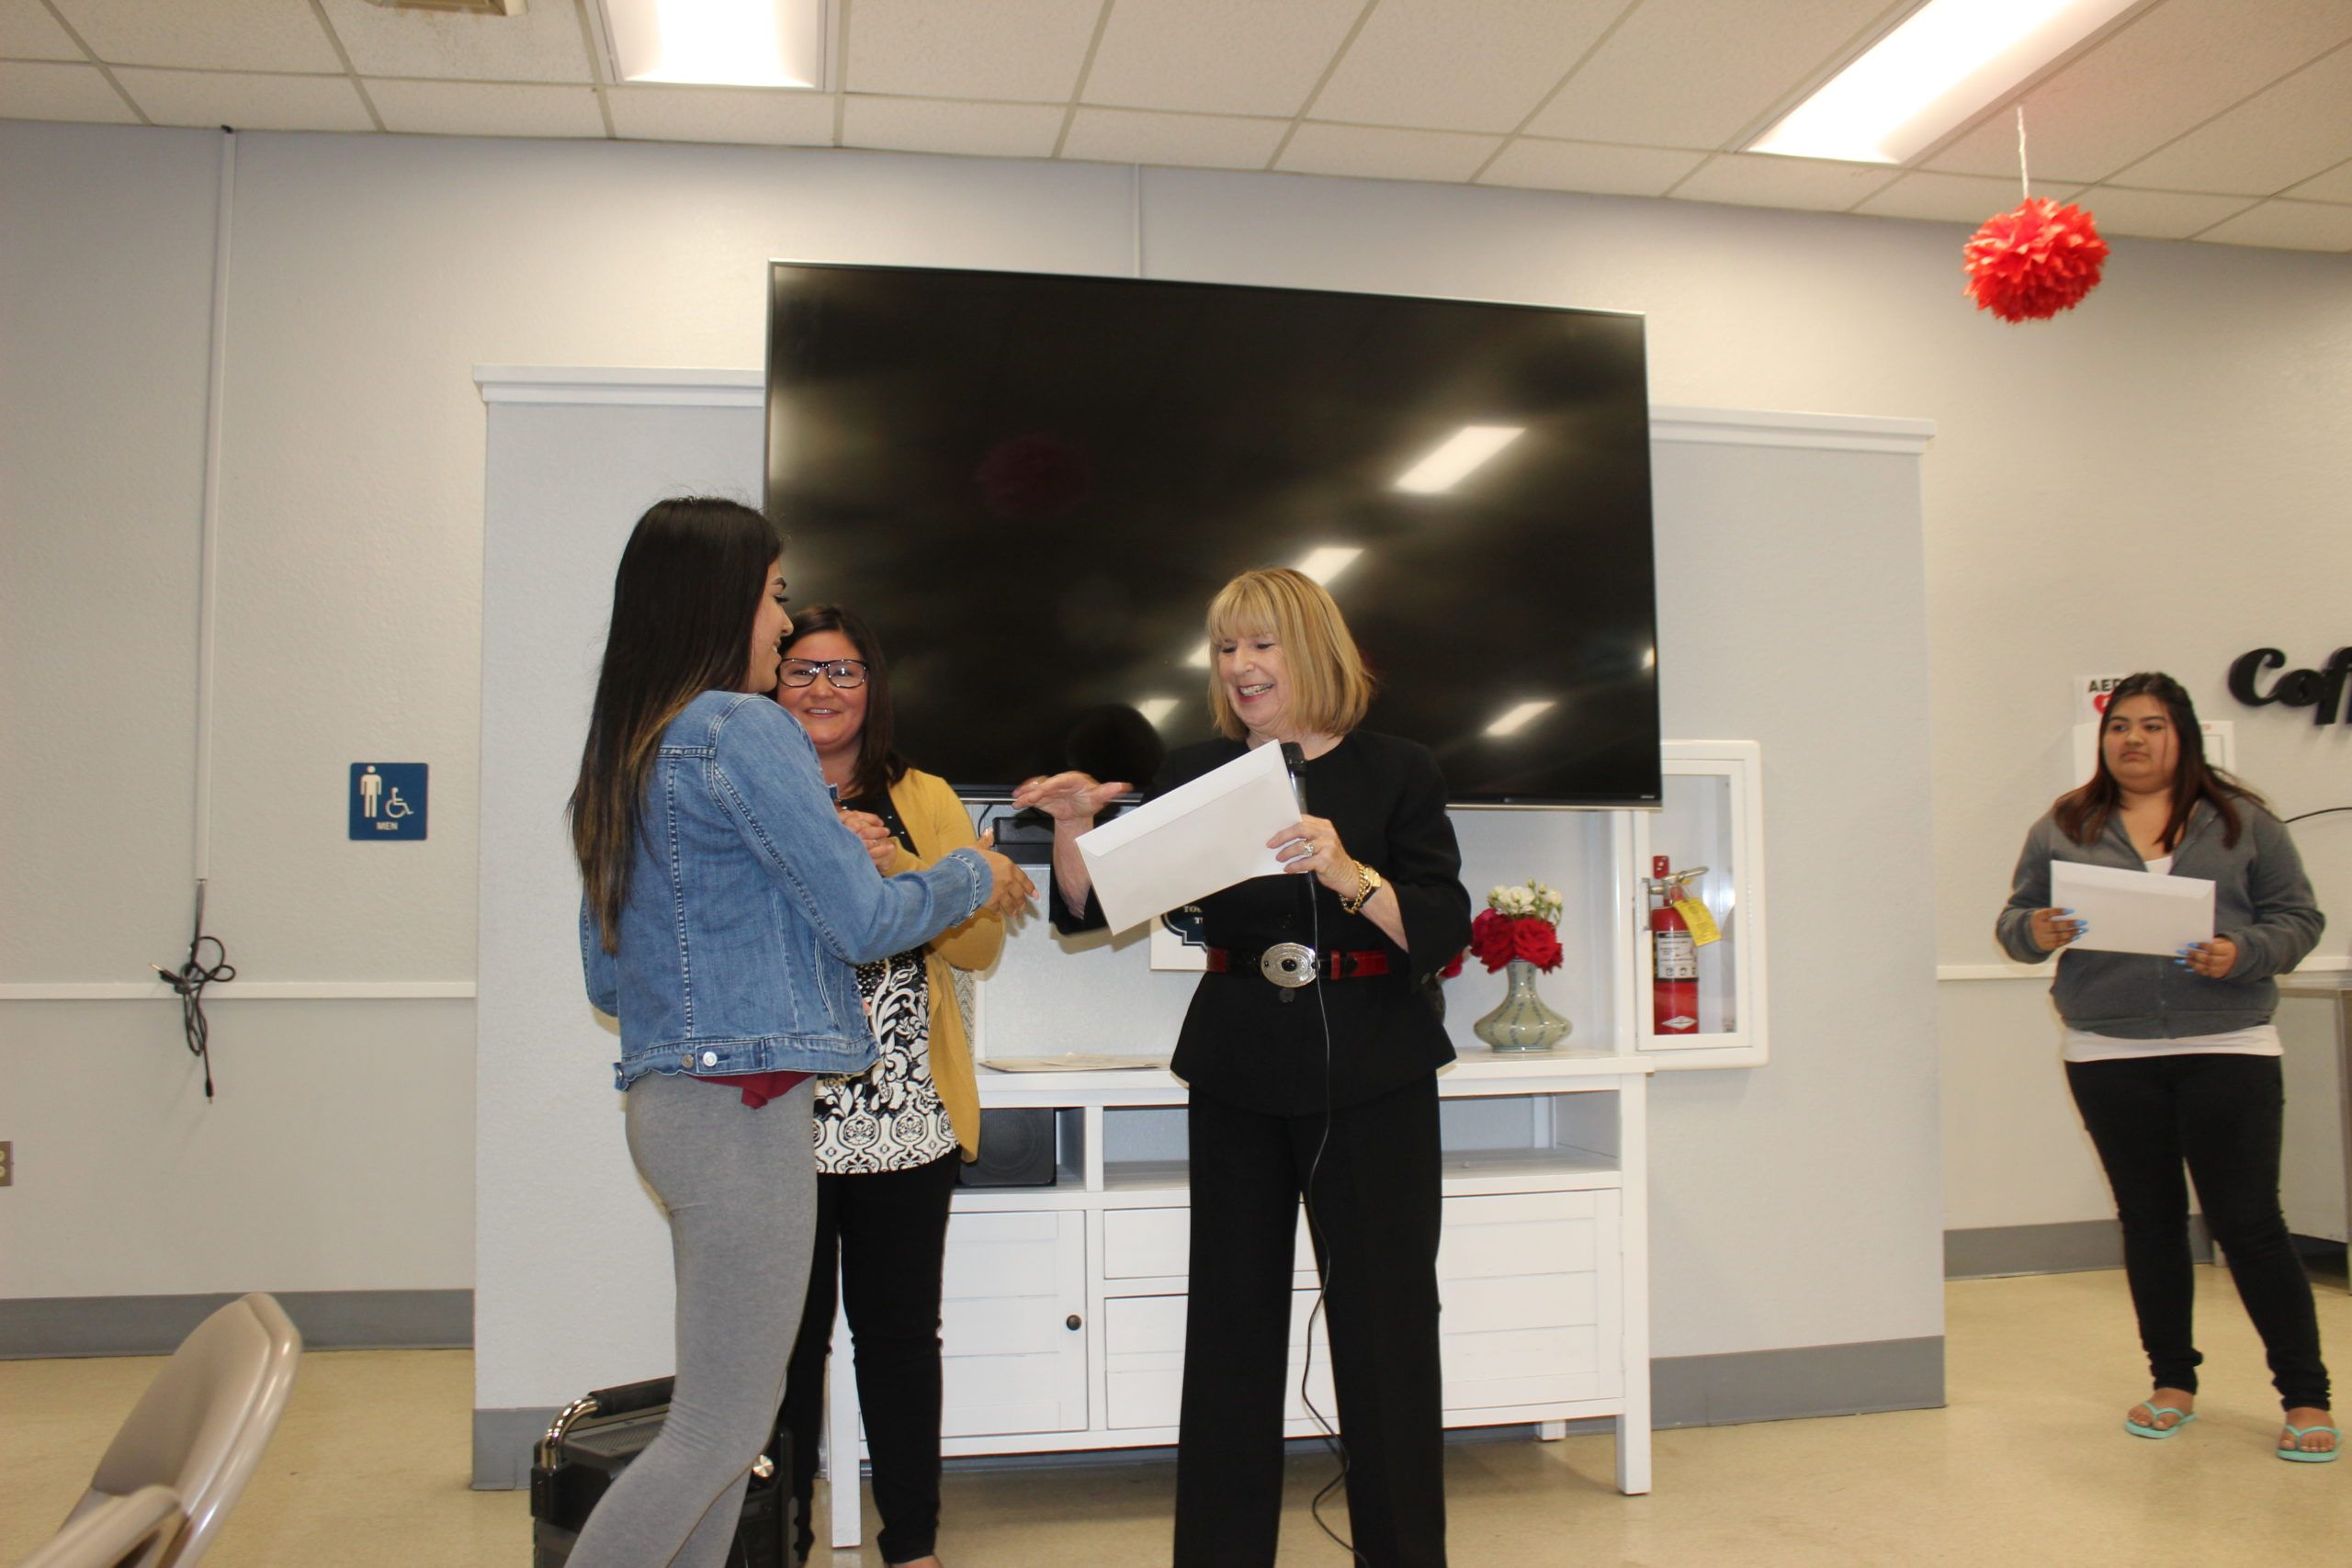 Photo of Donna Pray handing out a scholarship to a girl